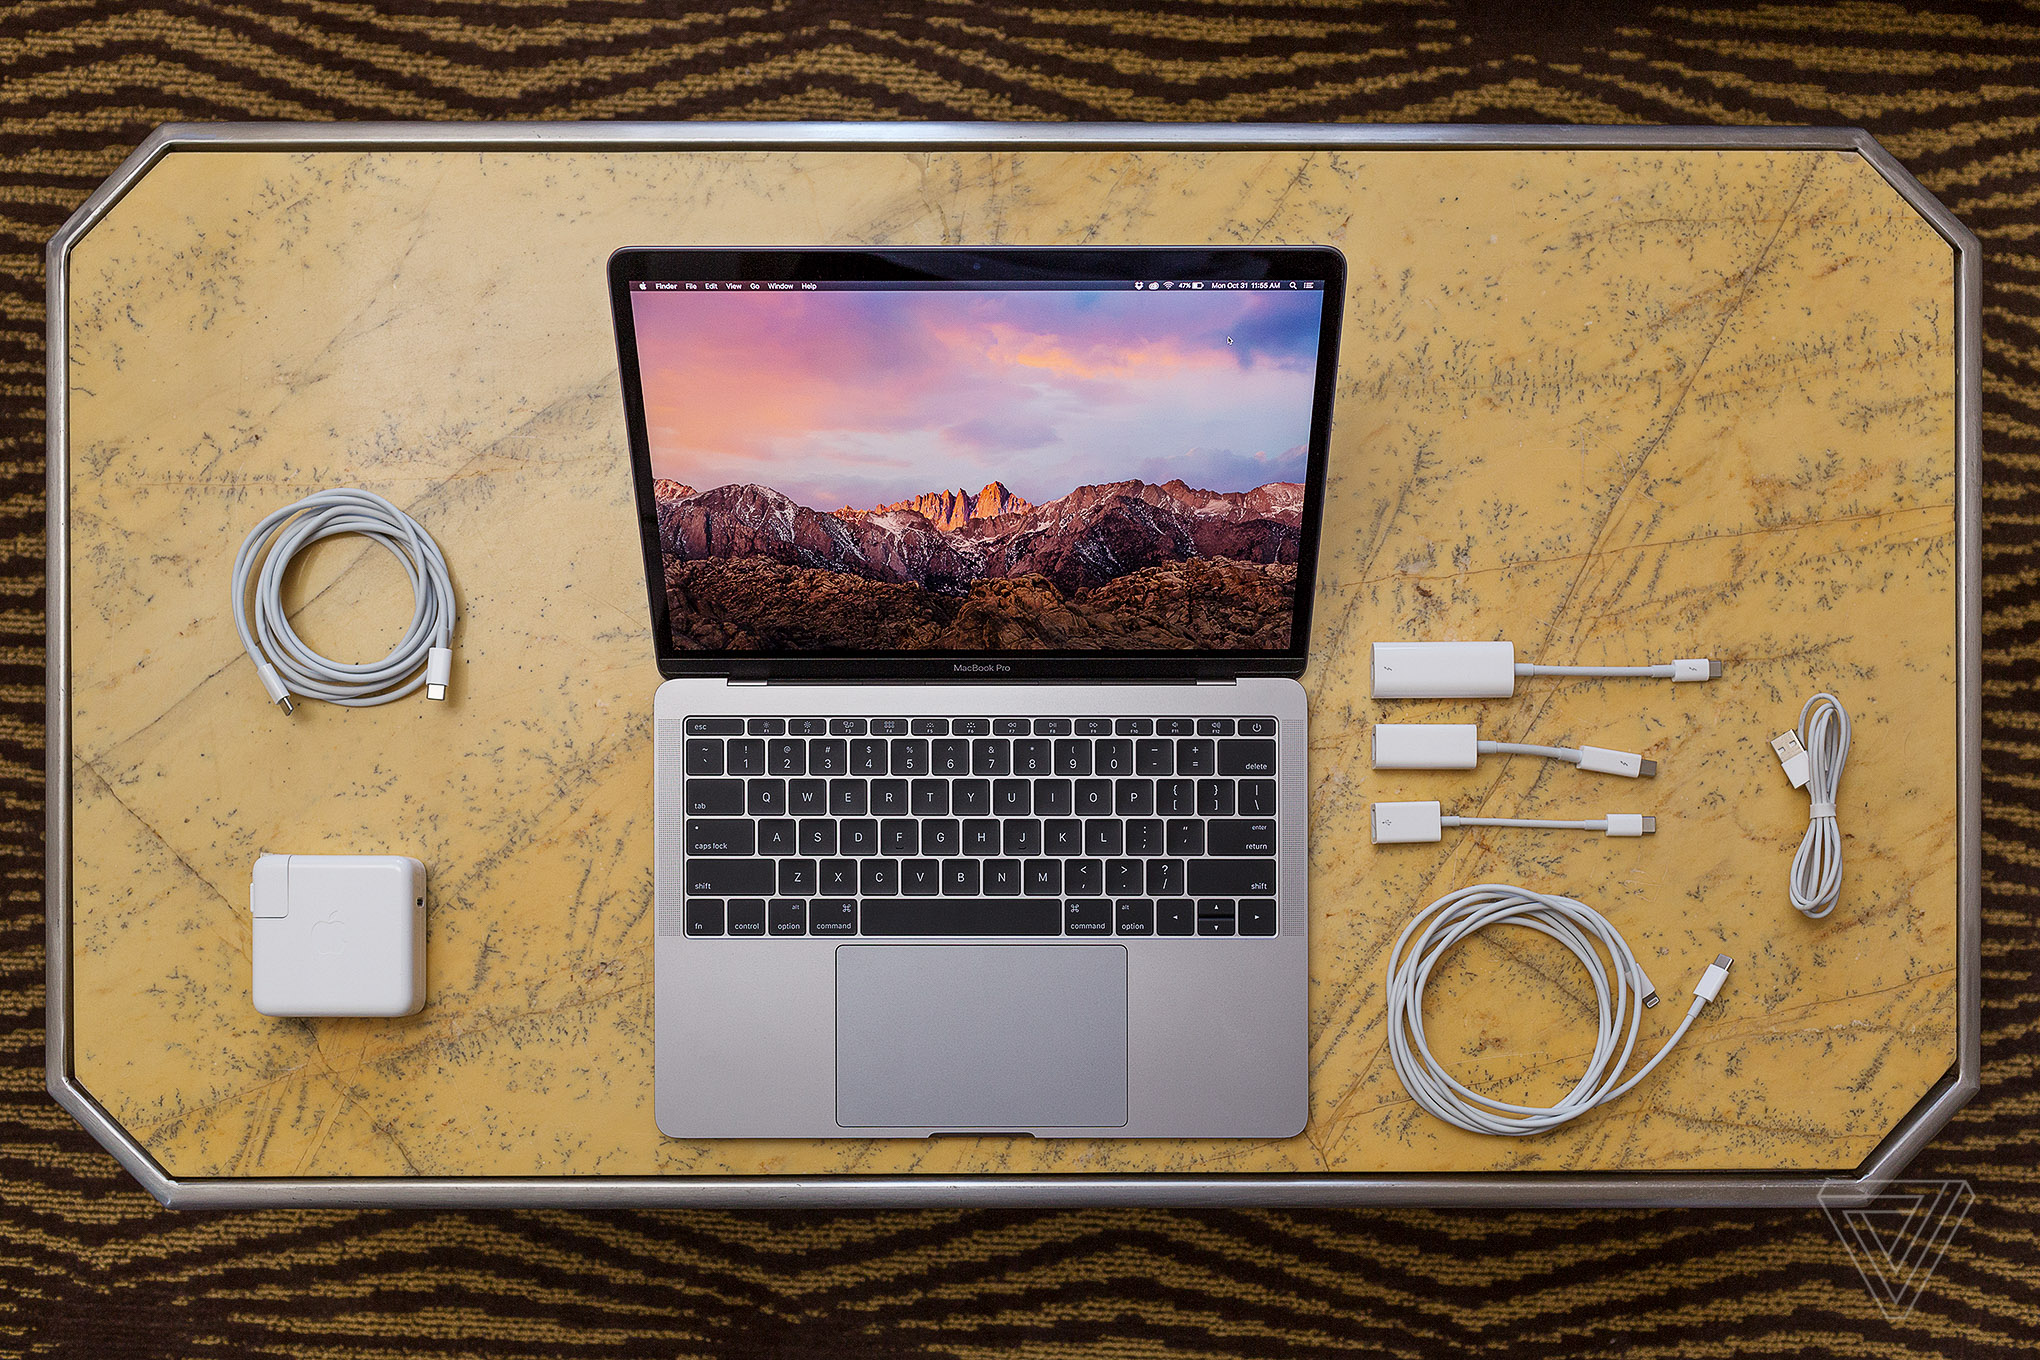 Apple cuts USB-C adapter prices in response to MacBook Pro